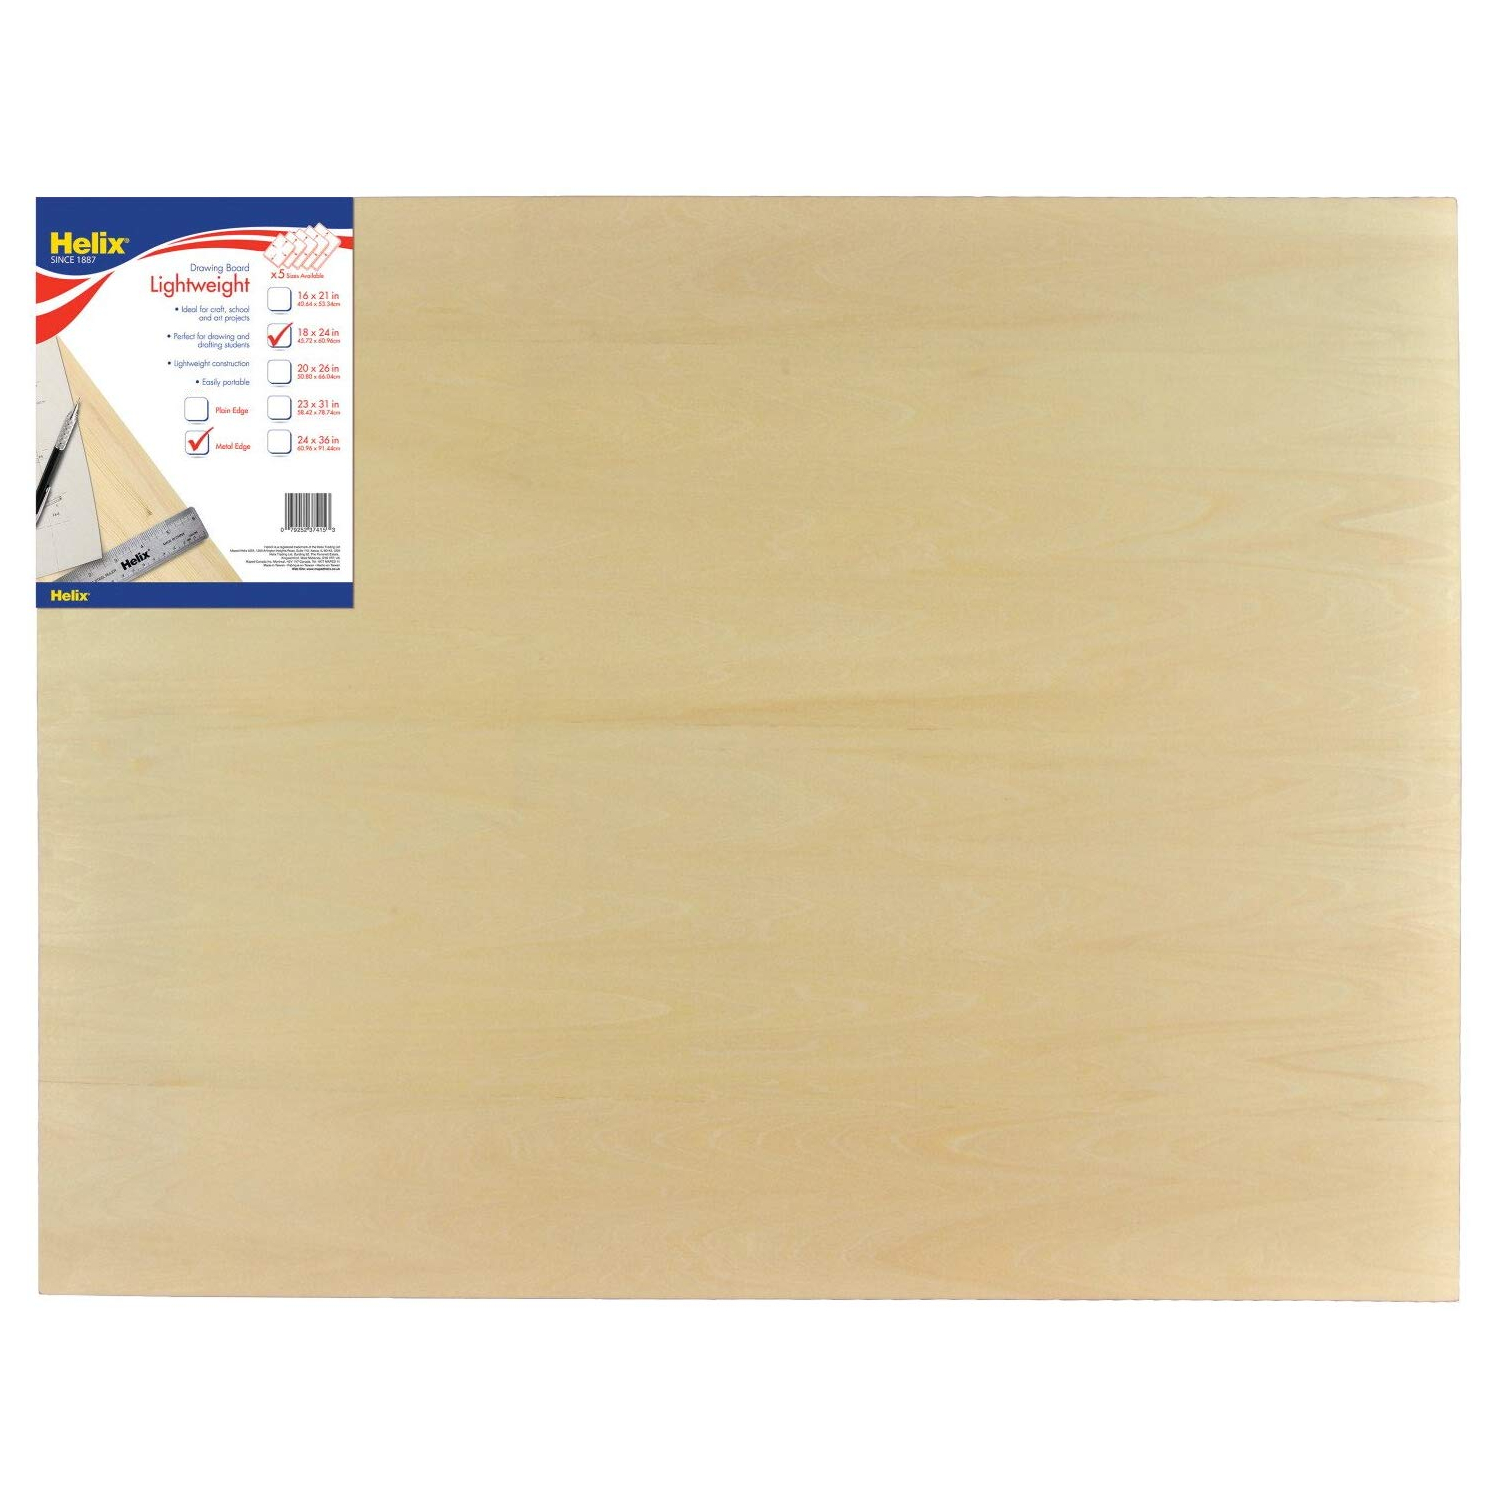 Airlite Drawing Board 18 x 24